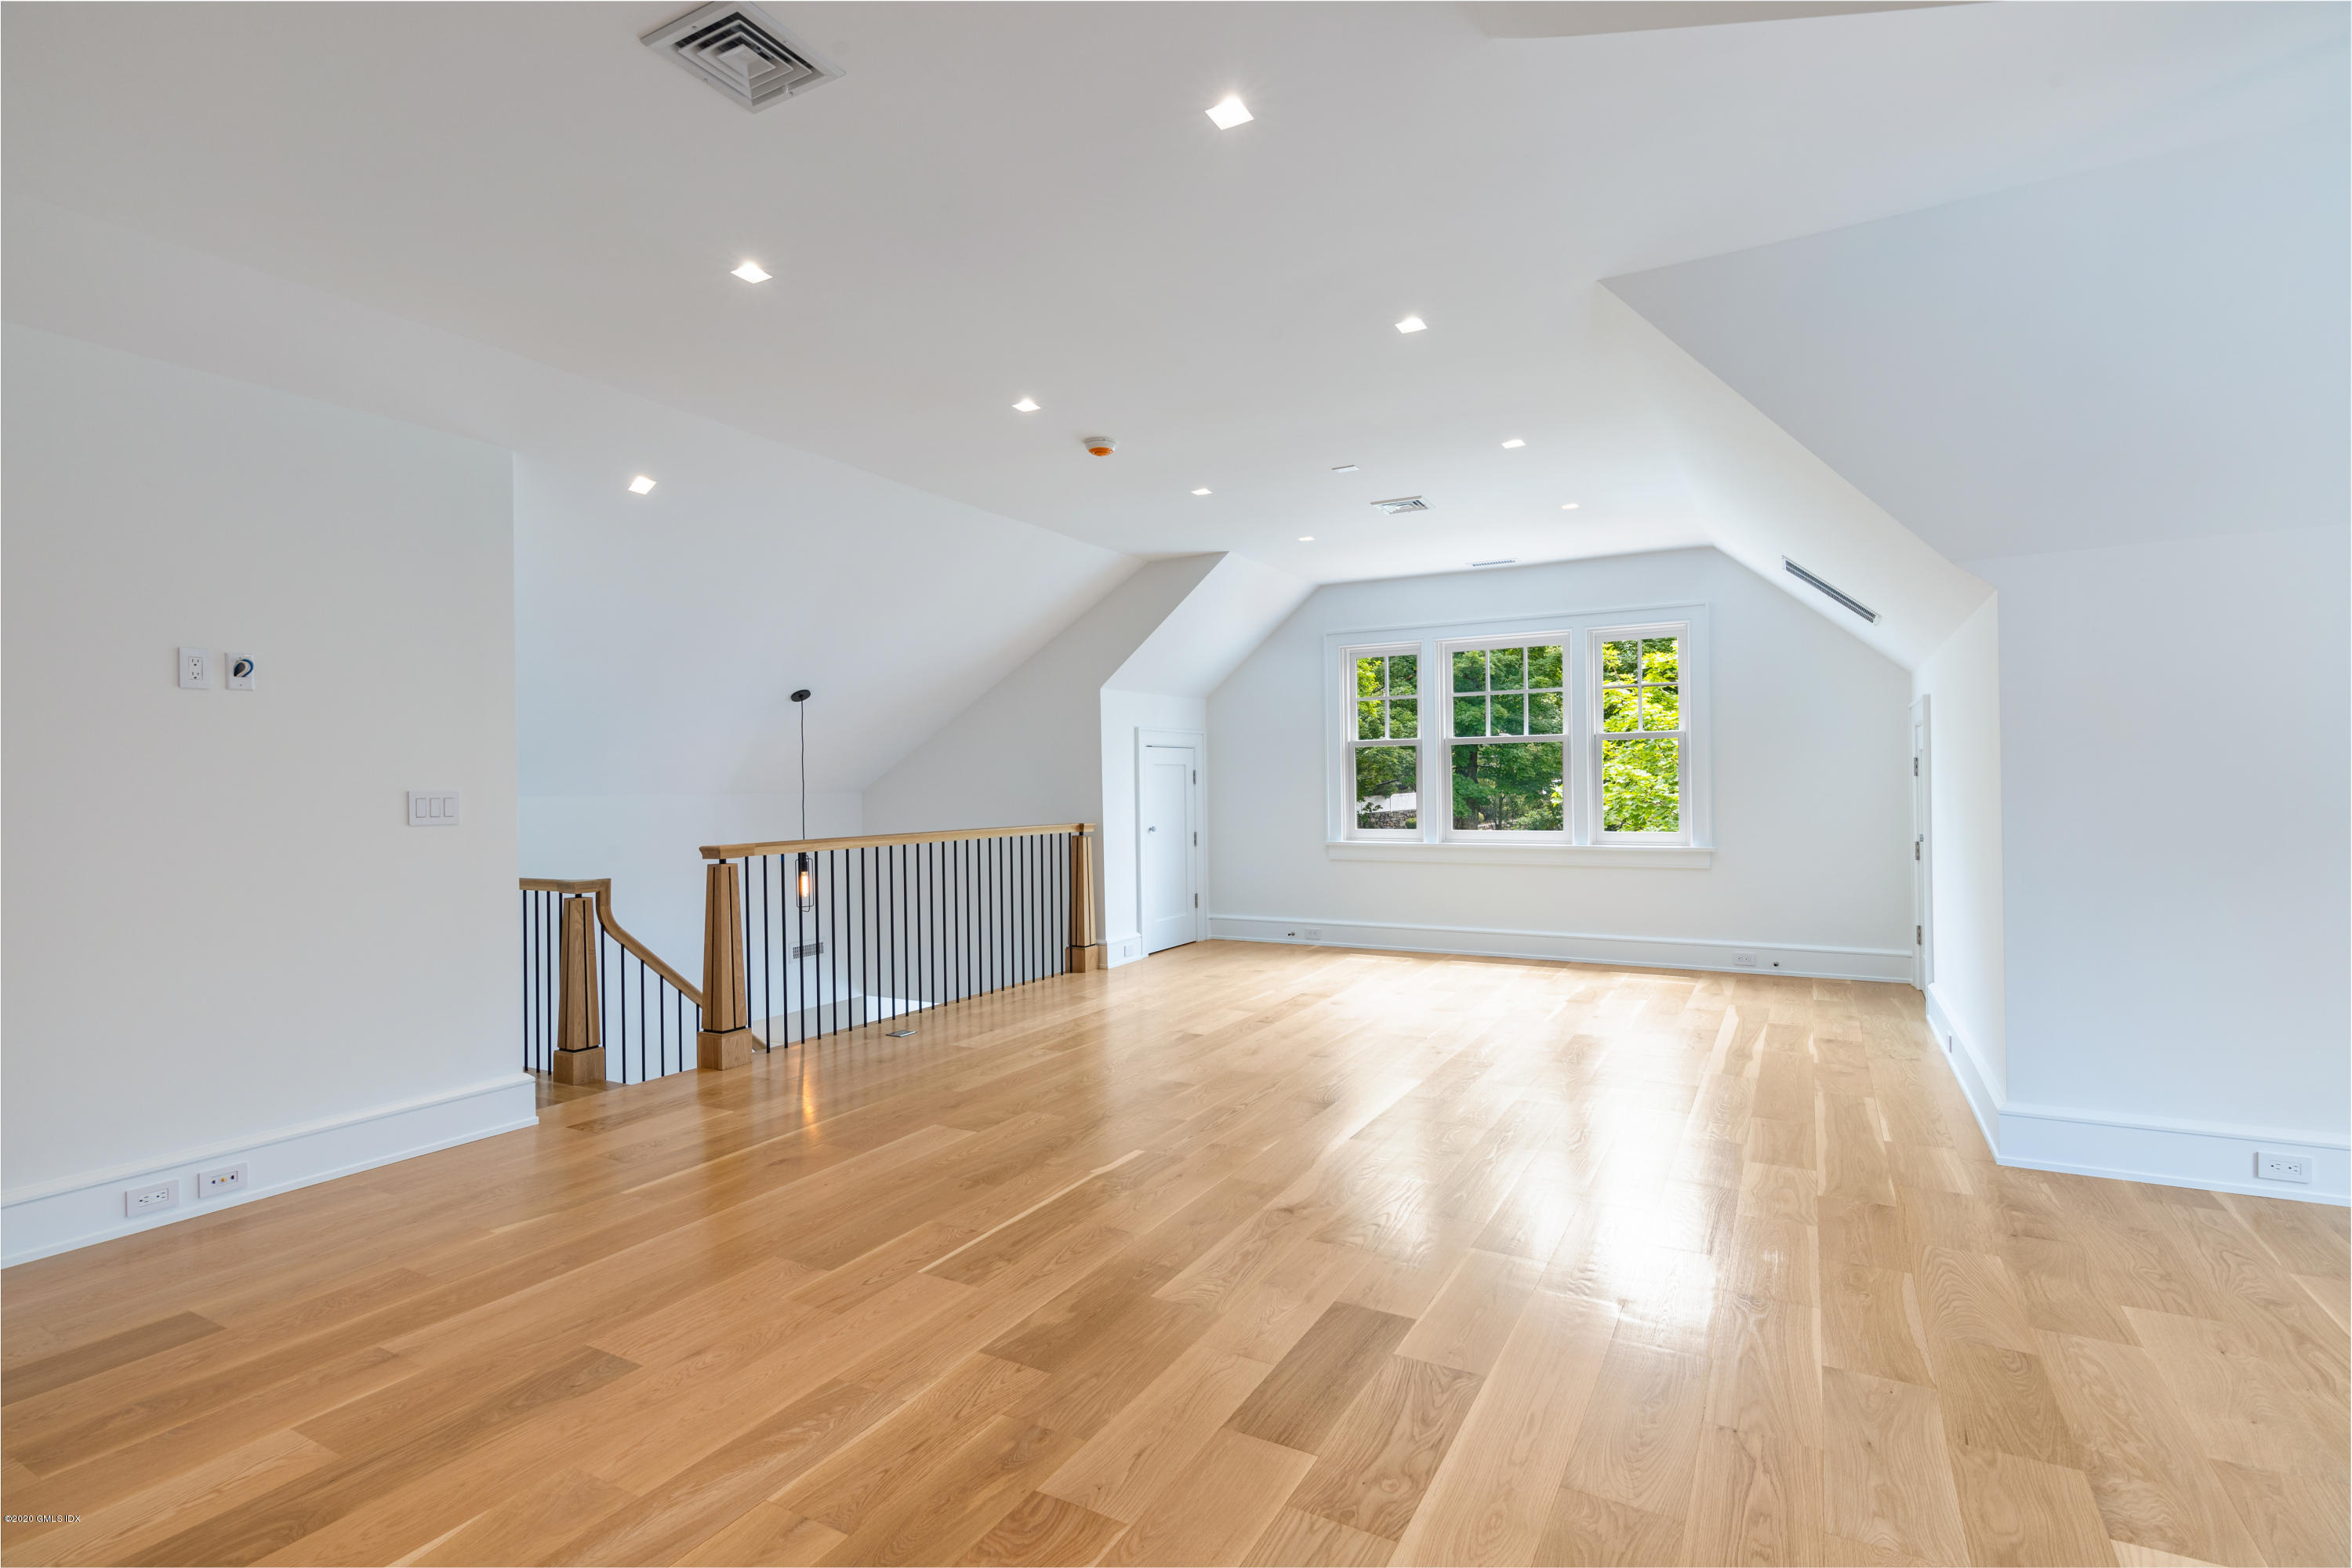 139 North Street, Greenwich, Connecticut 06830, 5 Bedrooms Bedrooms, ,6 BathroomsBathrooms,Single family,For Rent,North,110736